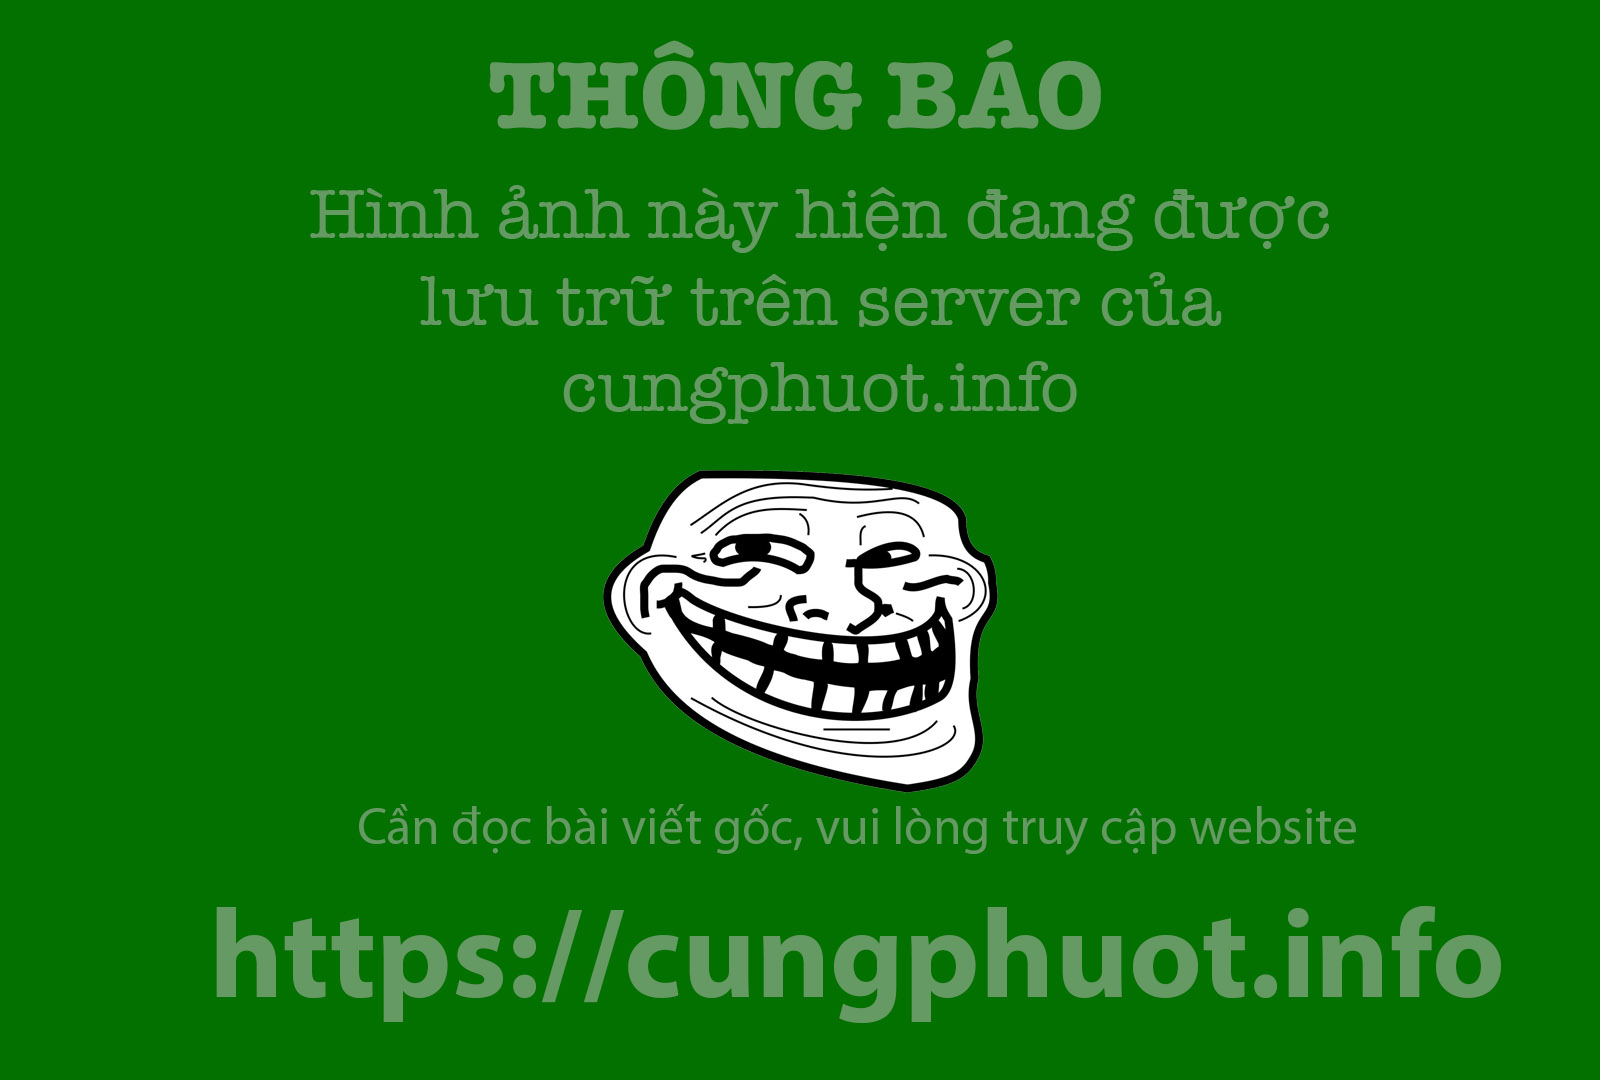 9 cung duong deo hung vi khien tin do du lich muon chinh phuc hinh anh 6